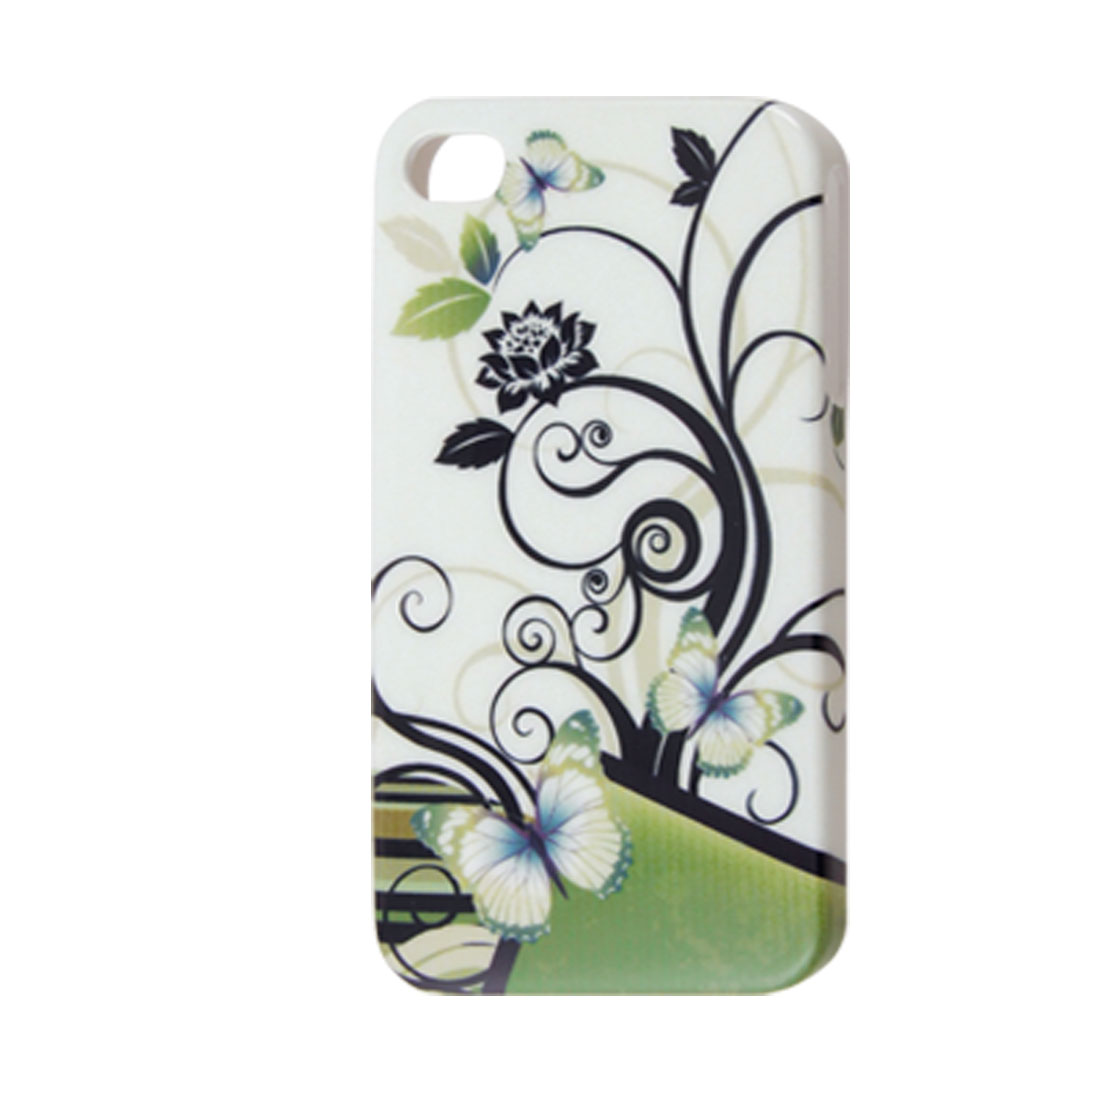 Hard Plastic Butterfly Abstract Flower IMD Back Case for iPhone 4 4G